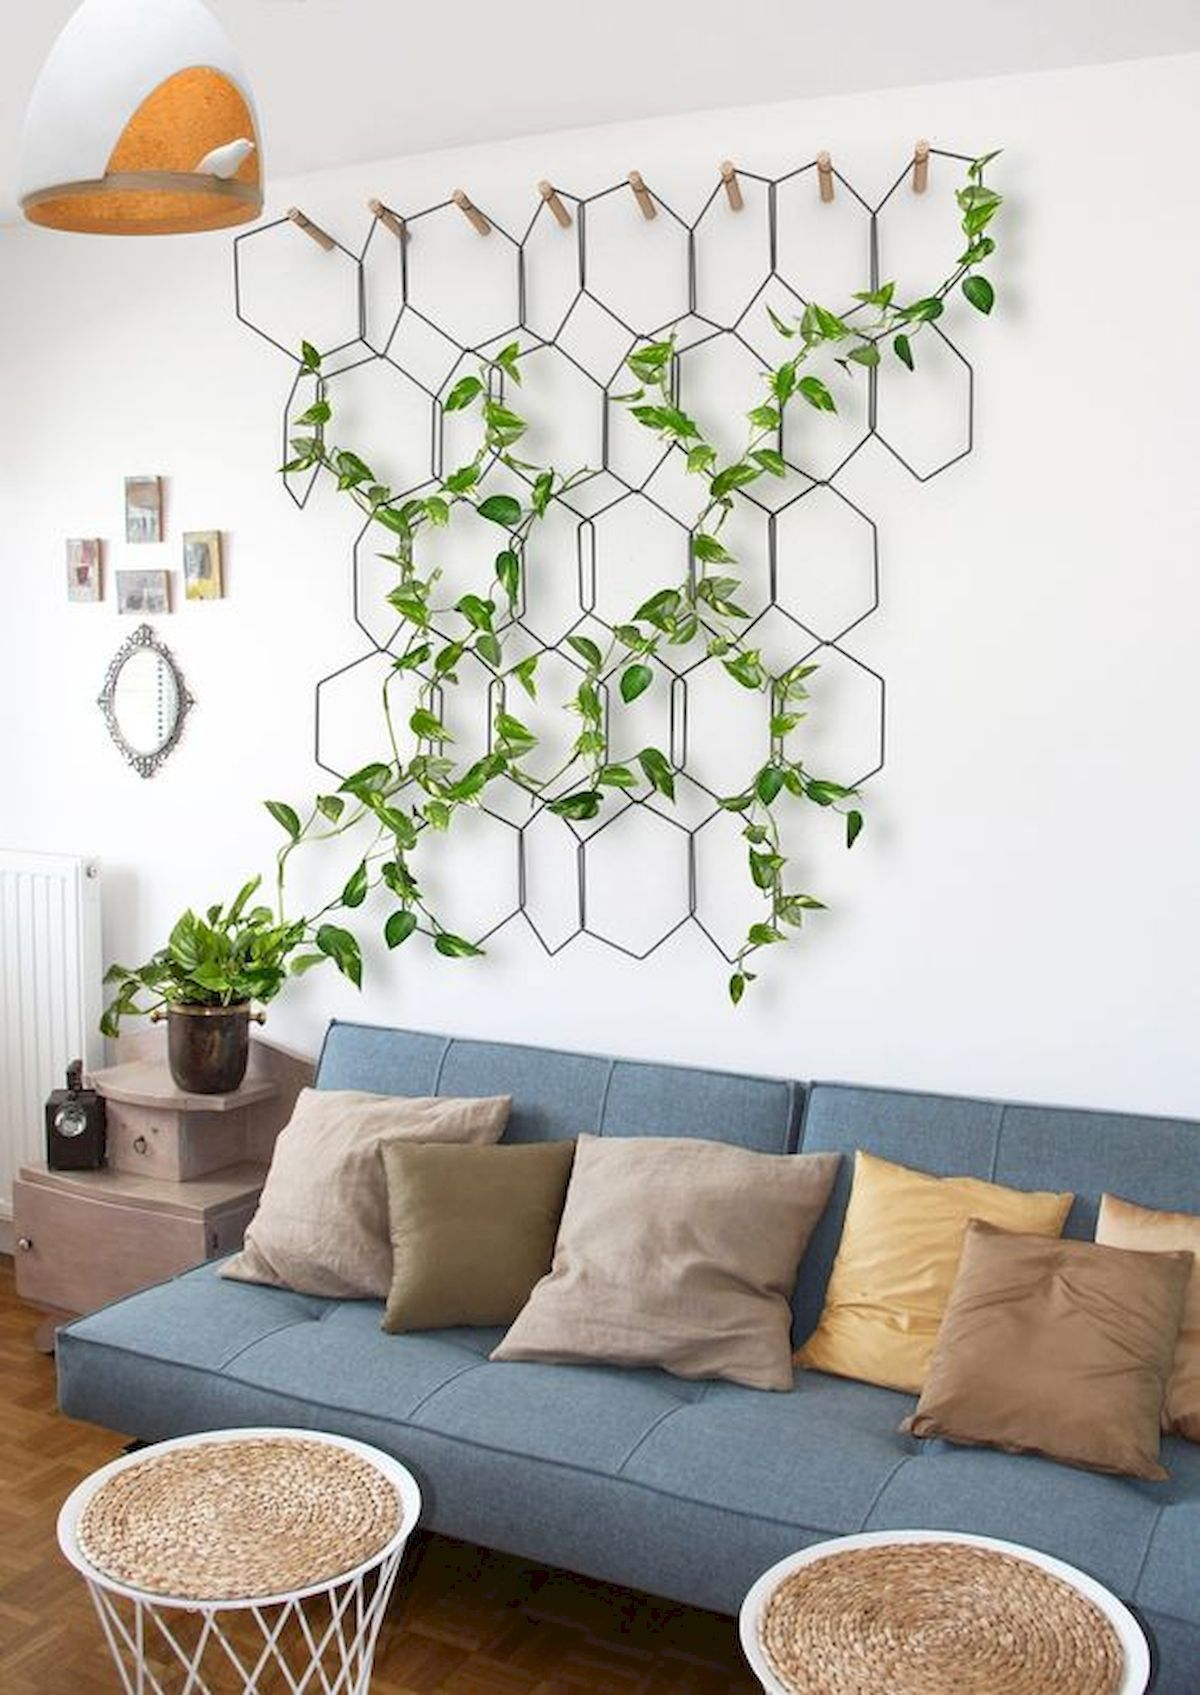 2019 Best Living Room Wall Art Ideas And Decorations 17 Worldecor Co Plant Decor Indoor Indoor Vines Home Decor